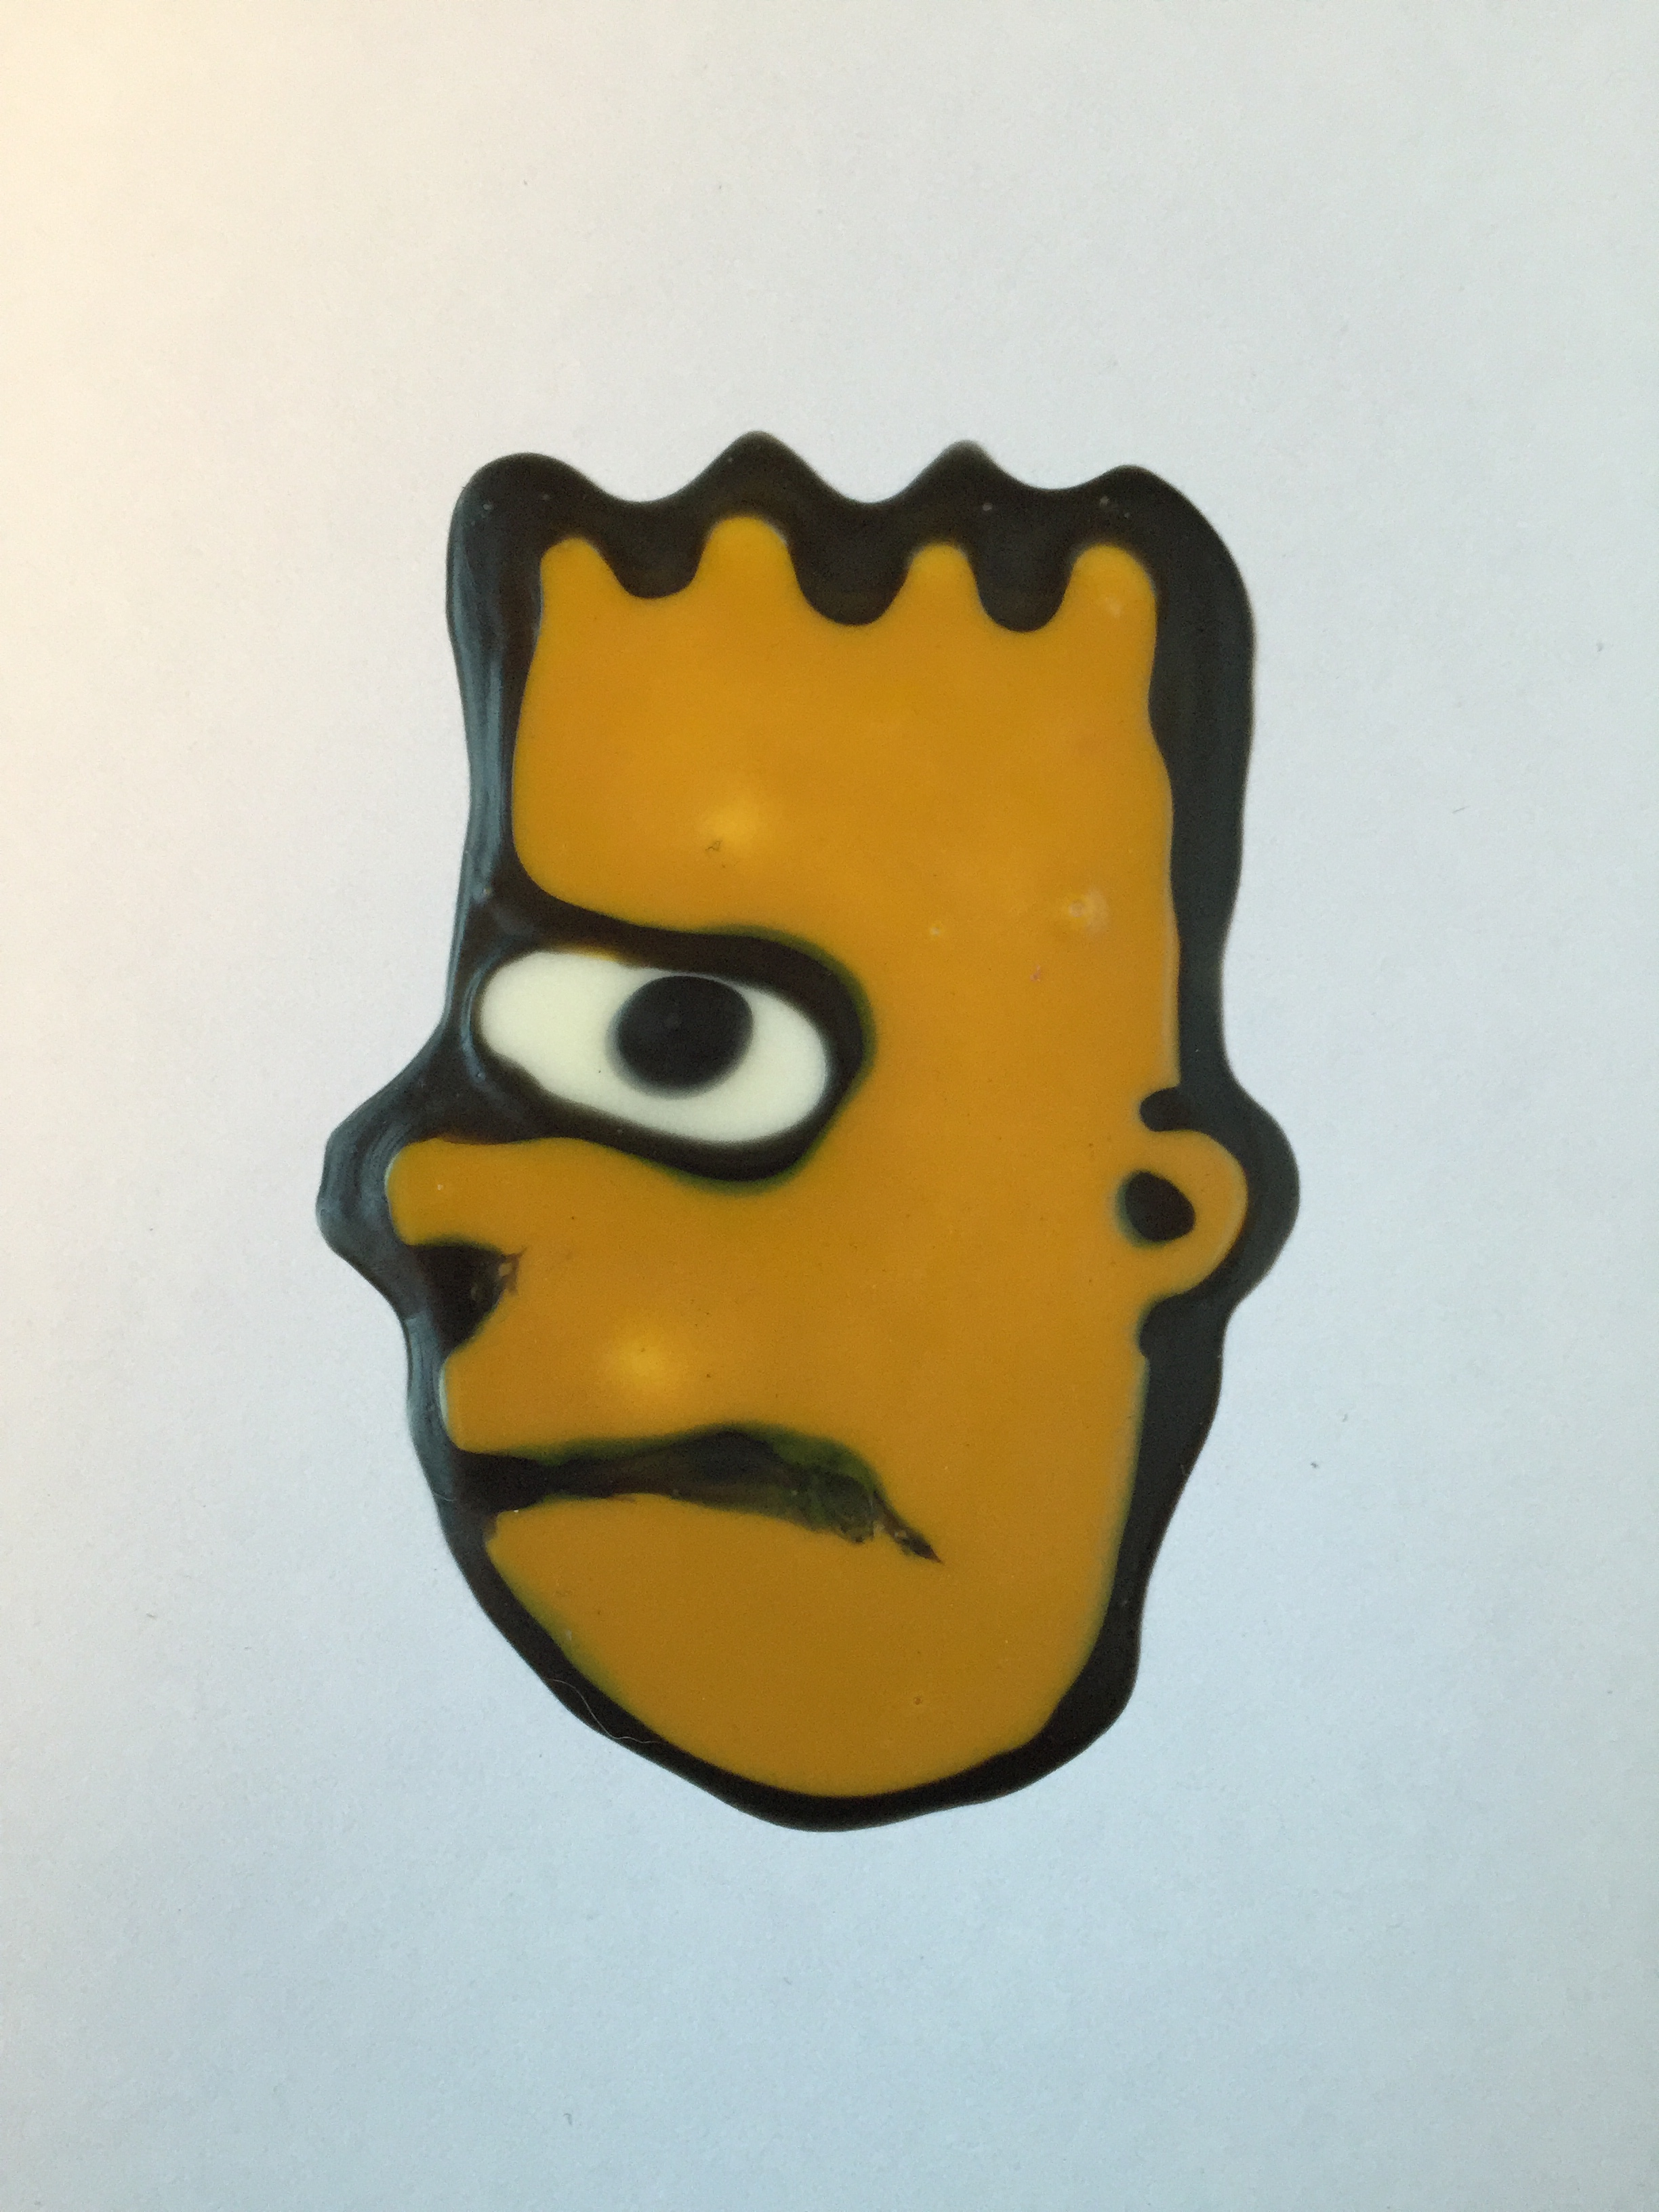 One-eyed Bart